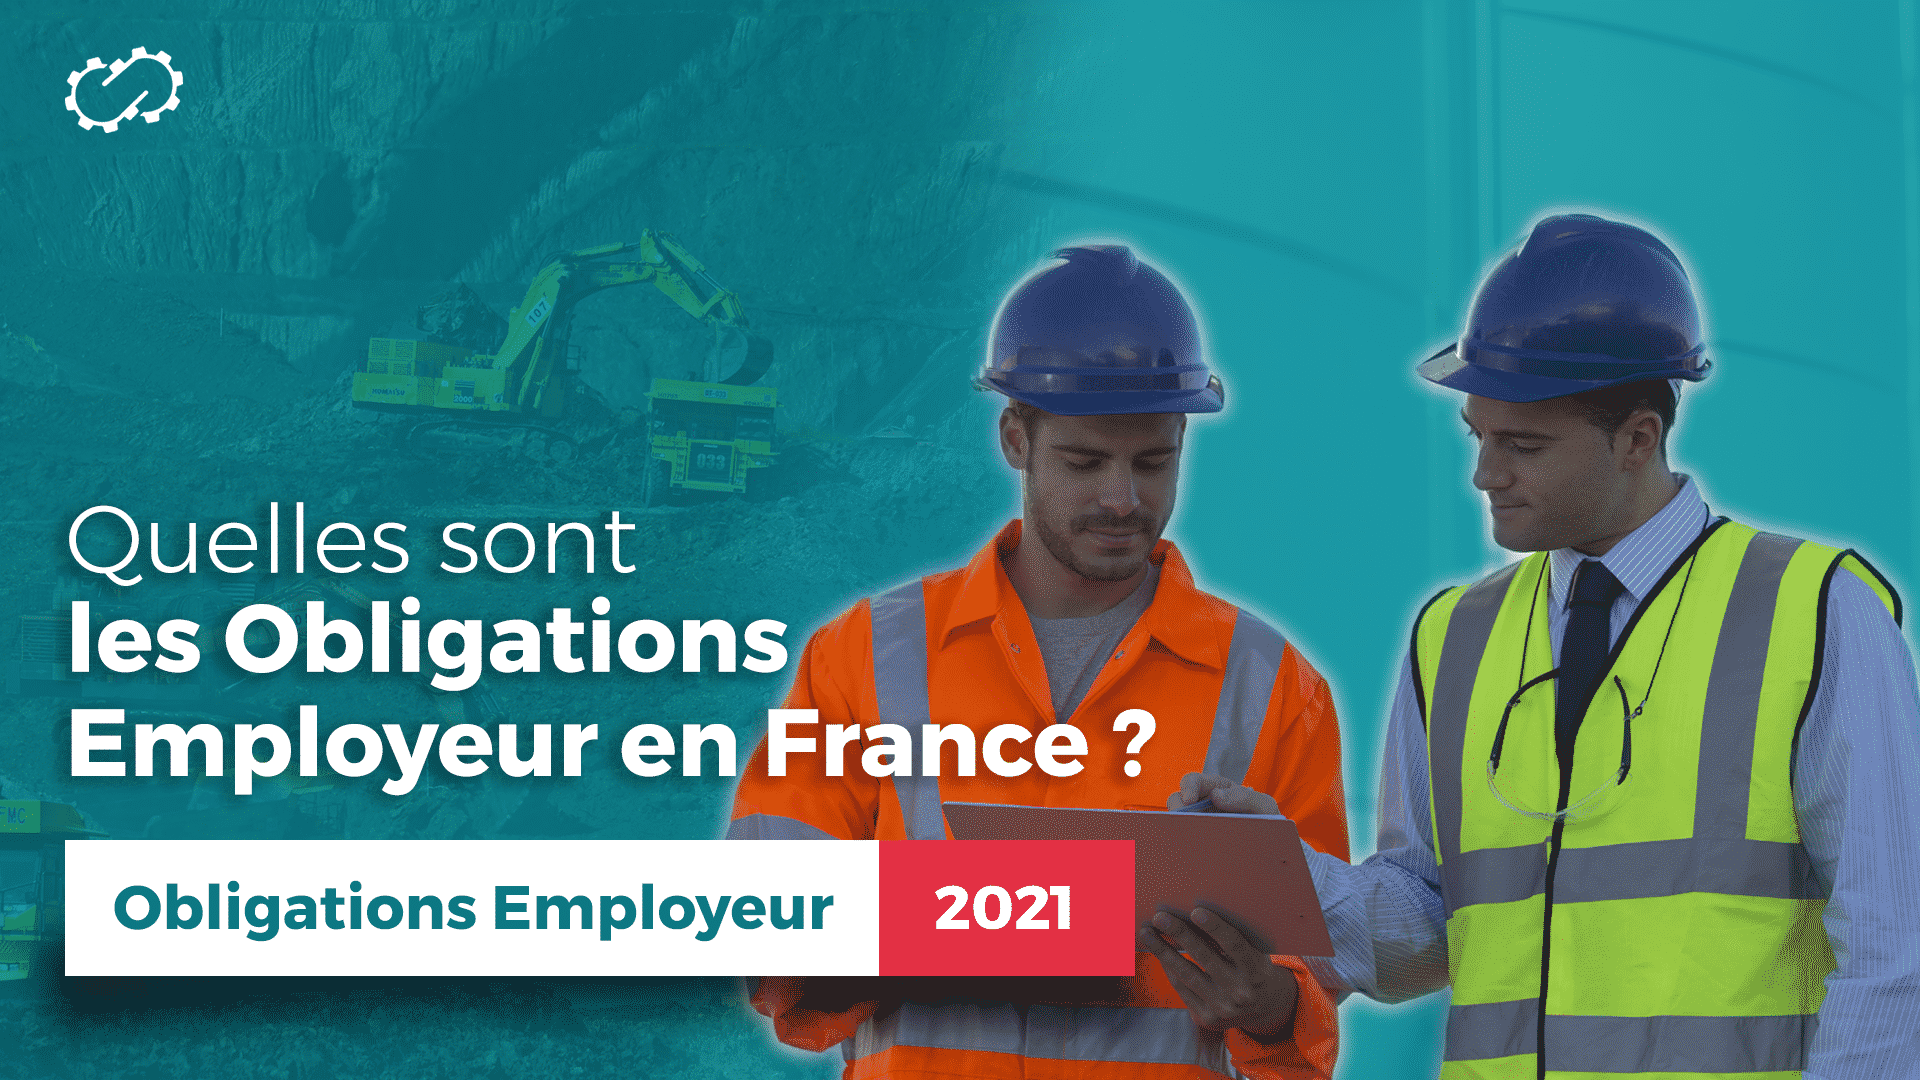 Obligations employeur en france